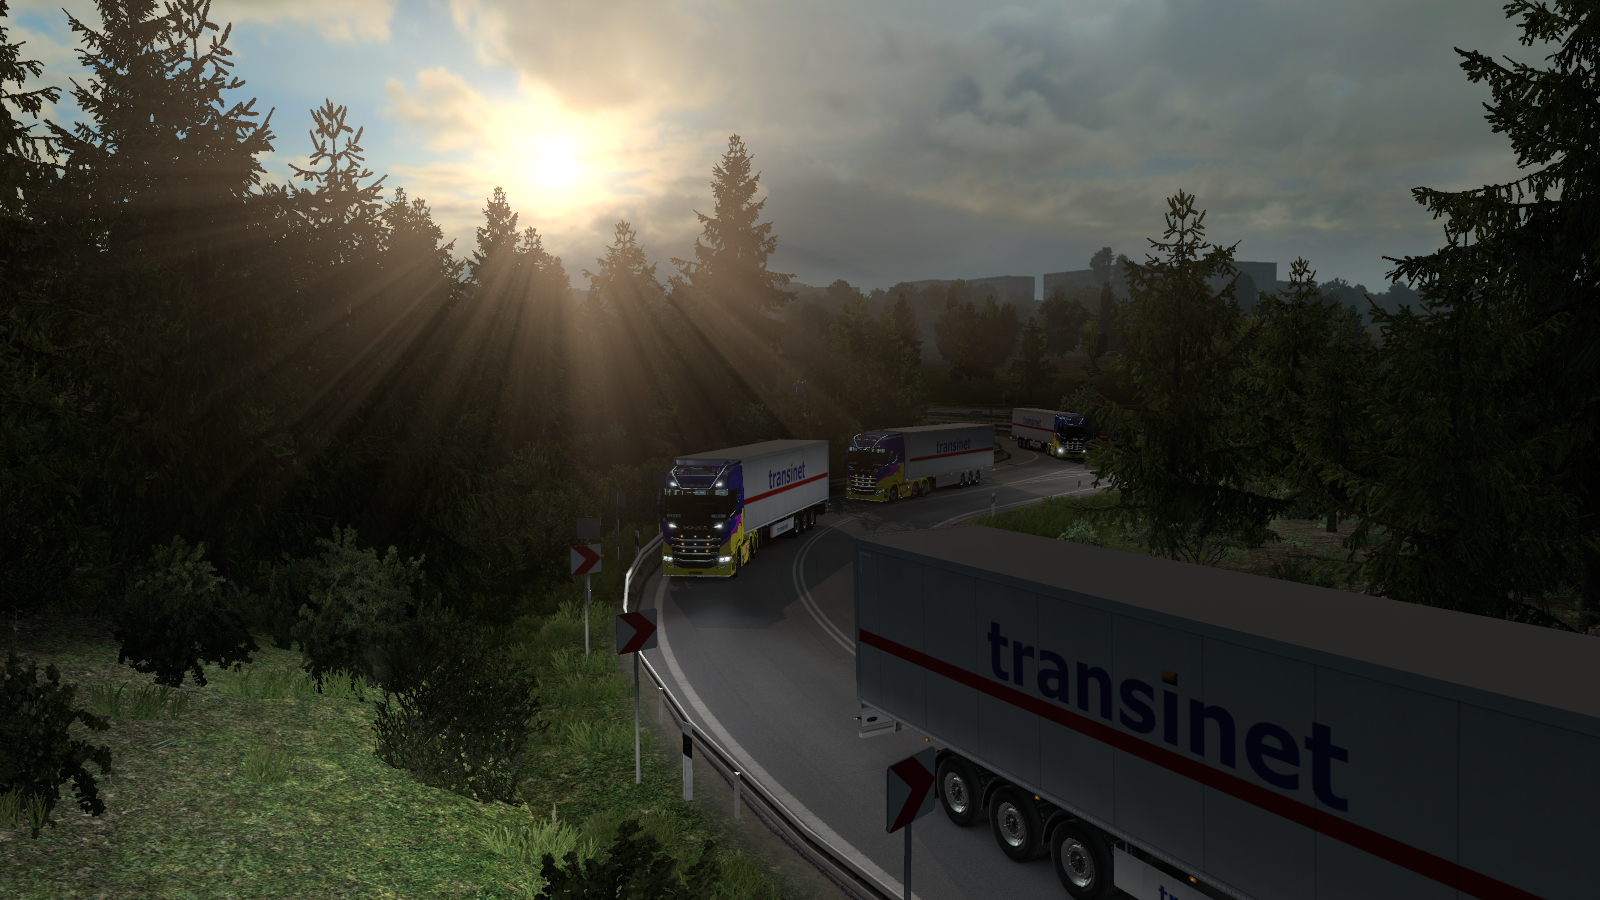 ets2_20190622_183029_00.png